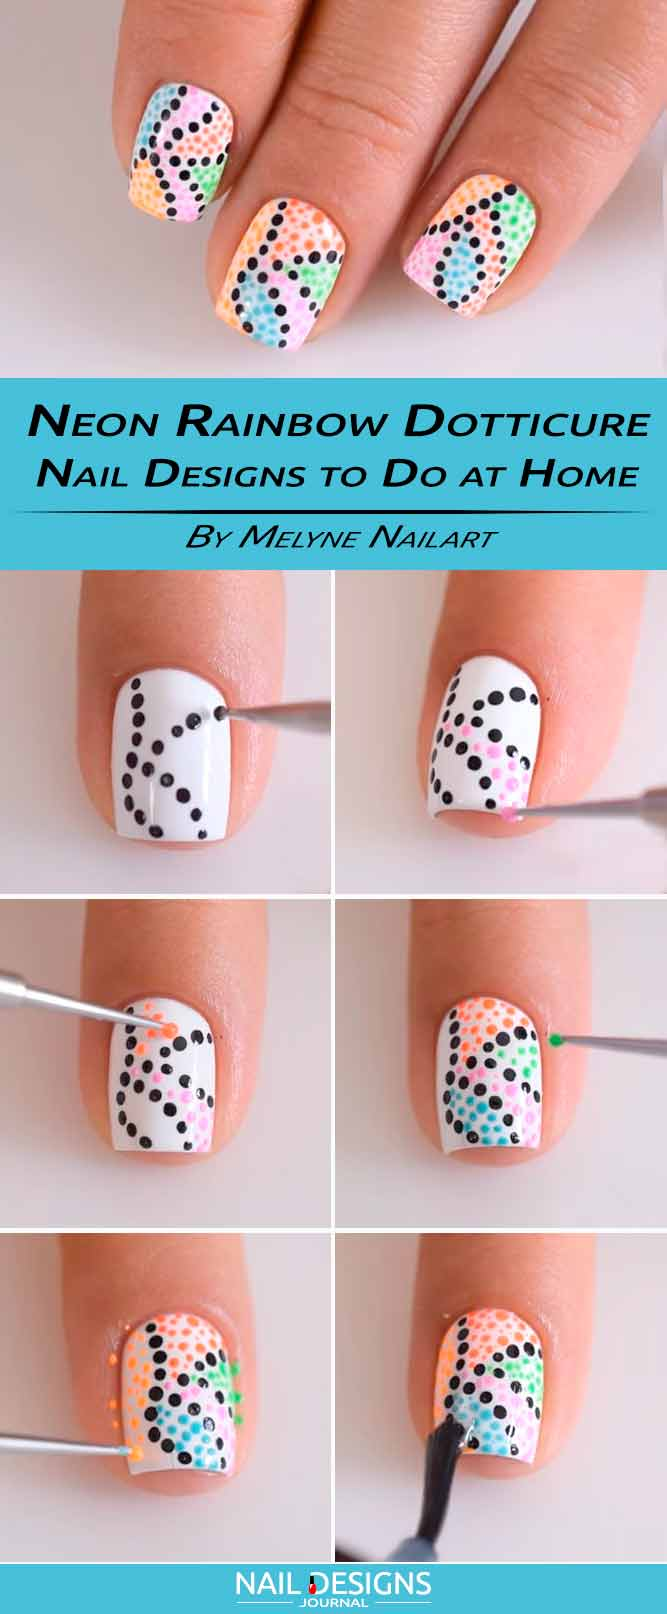 15 ideas how to do nail designs naildesignsjournal neon rainbow dotticure nail designs prinsesfo Gallery